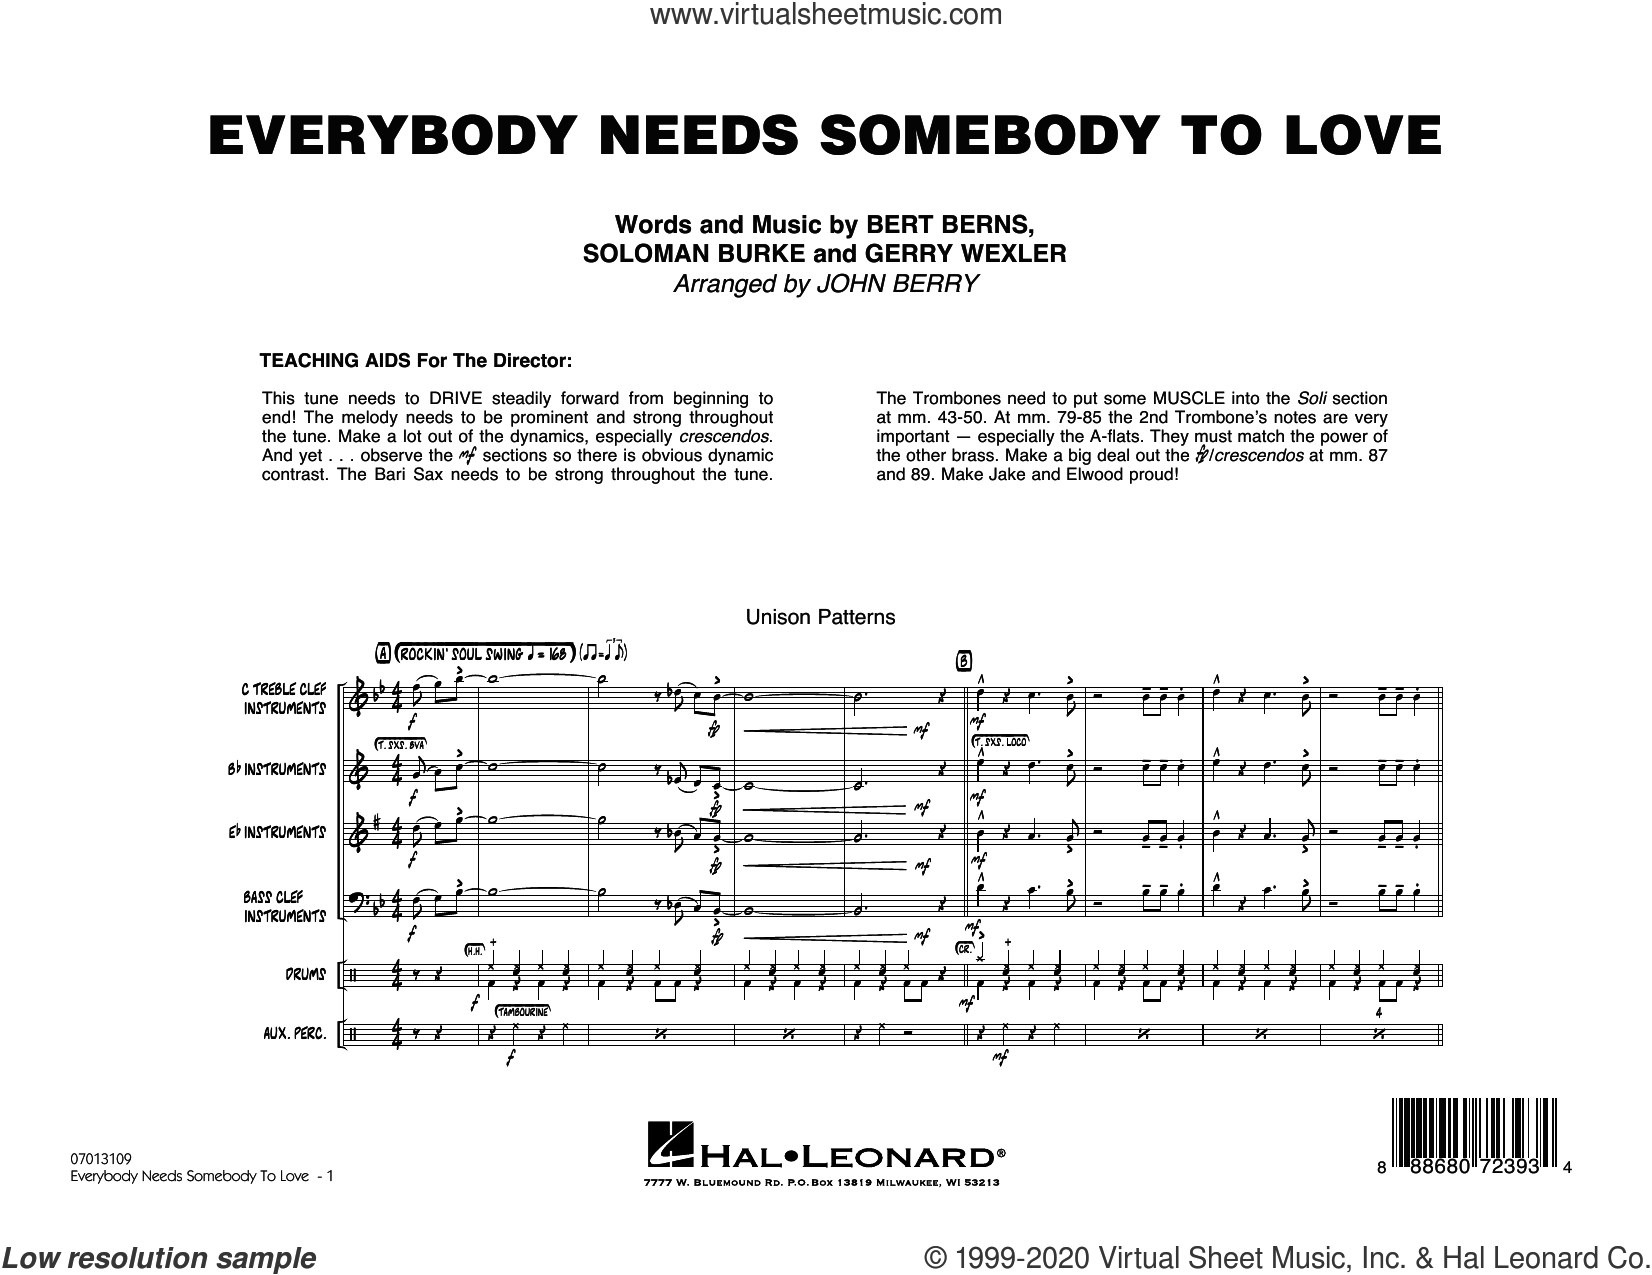 Everybody Needs Somebody to Love (COMPLETE) sheet music for jazz band by John Berry, Bert Berns, Gerry Wexler, Soloman Burke, The Blues Brothers and Wilson Pickett, intermediate skill level